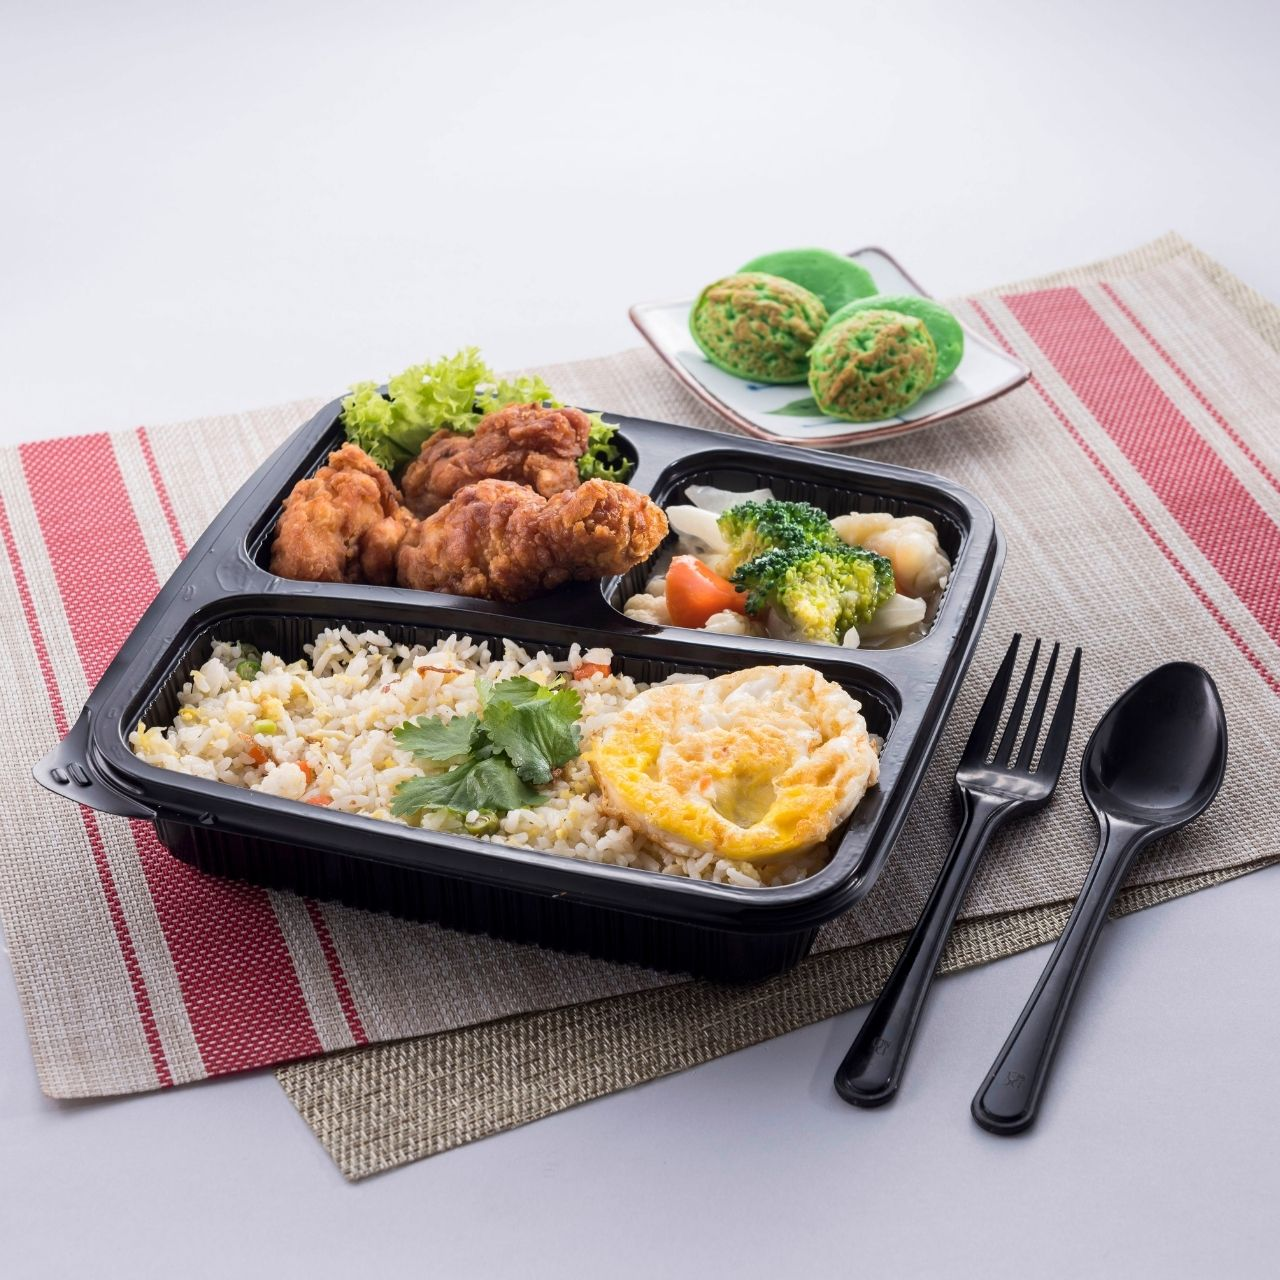 runningmen catering bento box yong chow fried rice with fried chicken